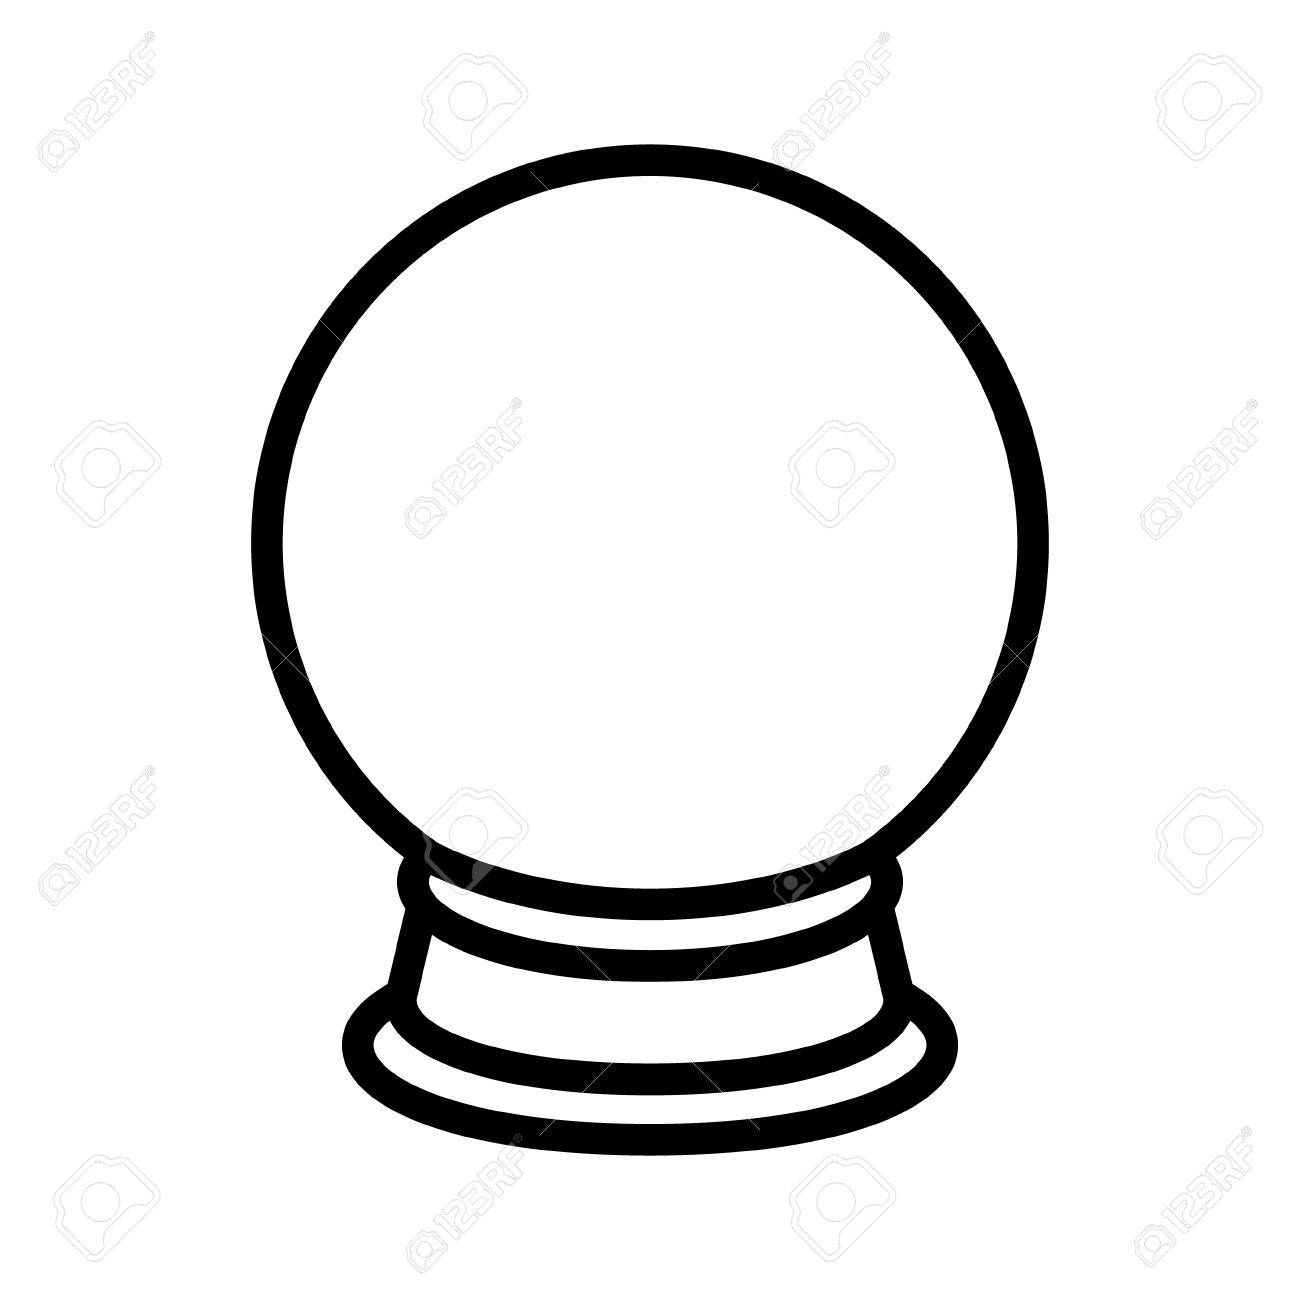 crystal ball of fortune telling line art icon for apps and websites rh 123rf com crystal ball clipart free fortune teller crystal ball clipart